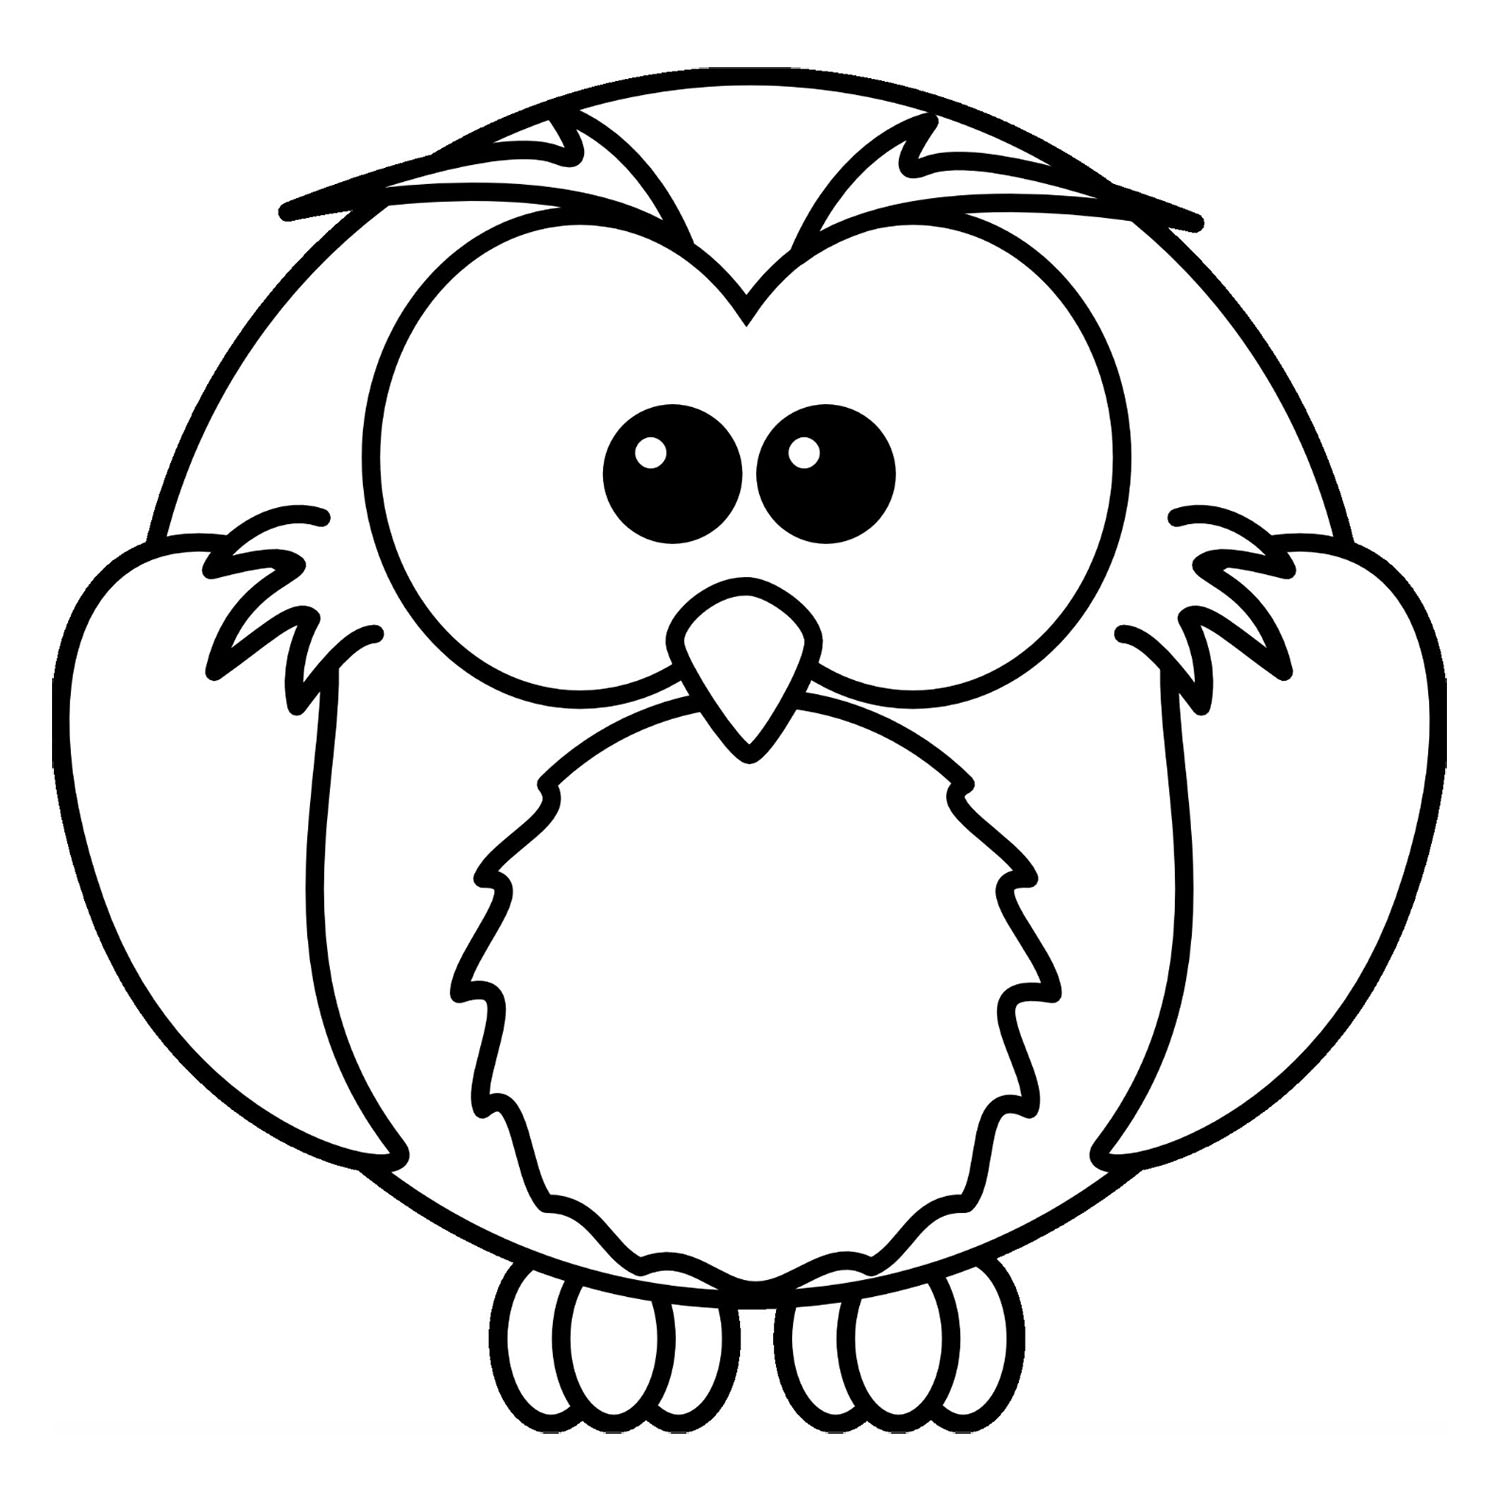 coloring birds for kids birds free to color for children birds kids coloring pages for birds coloring kids